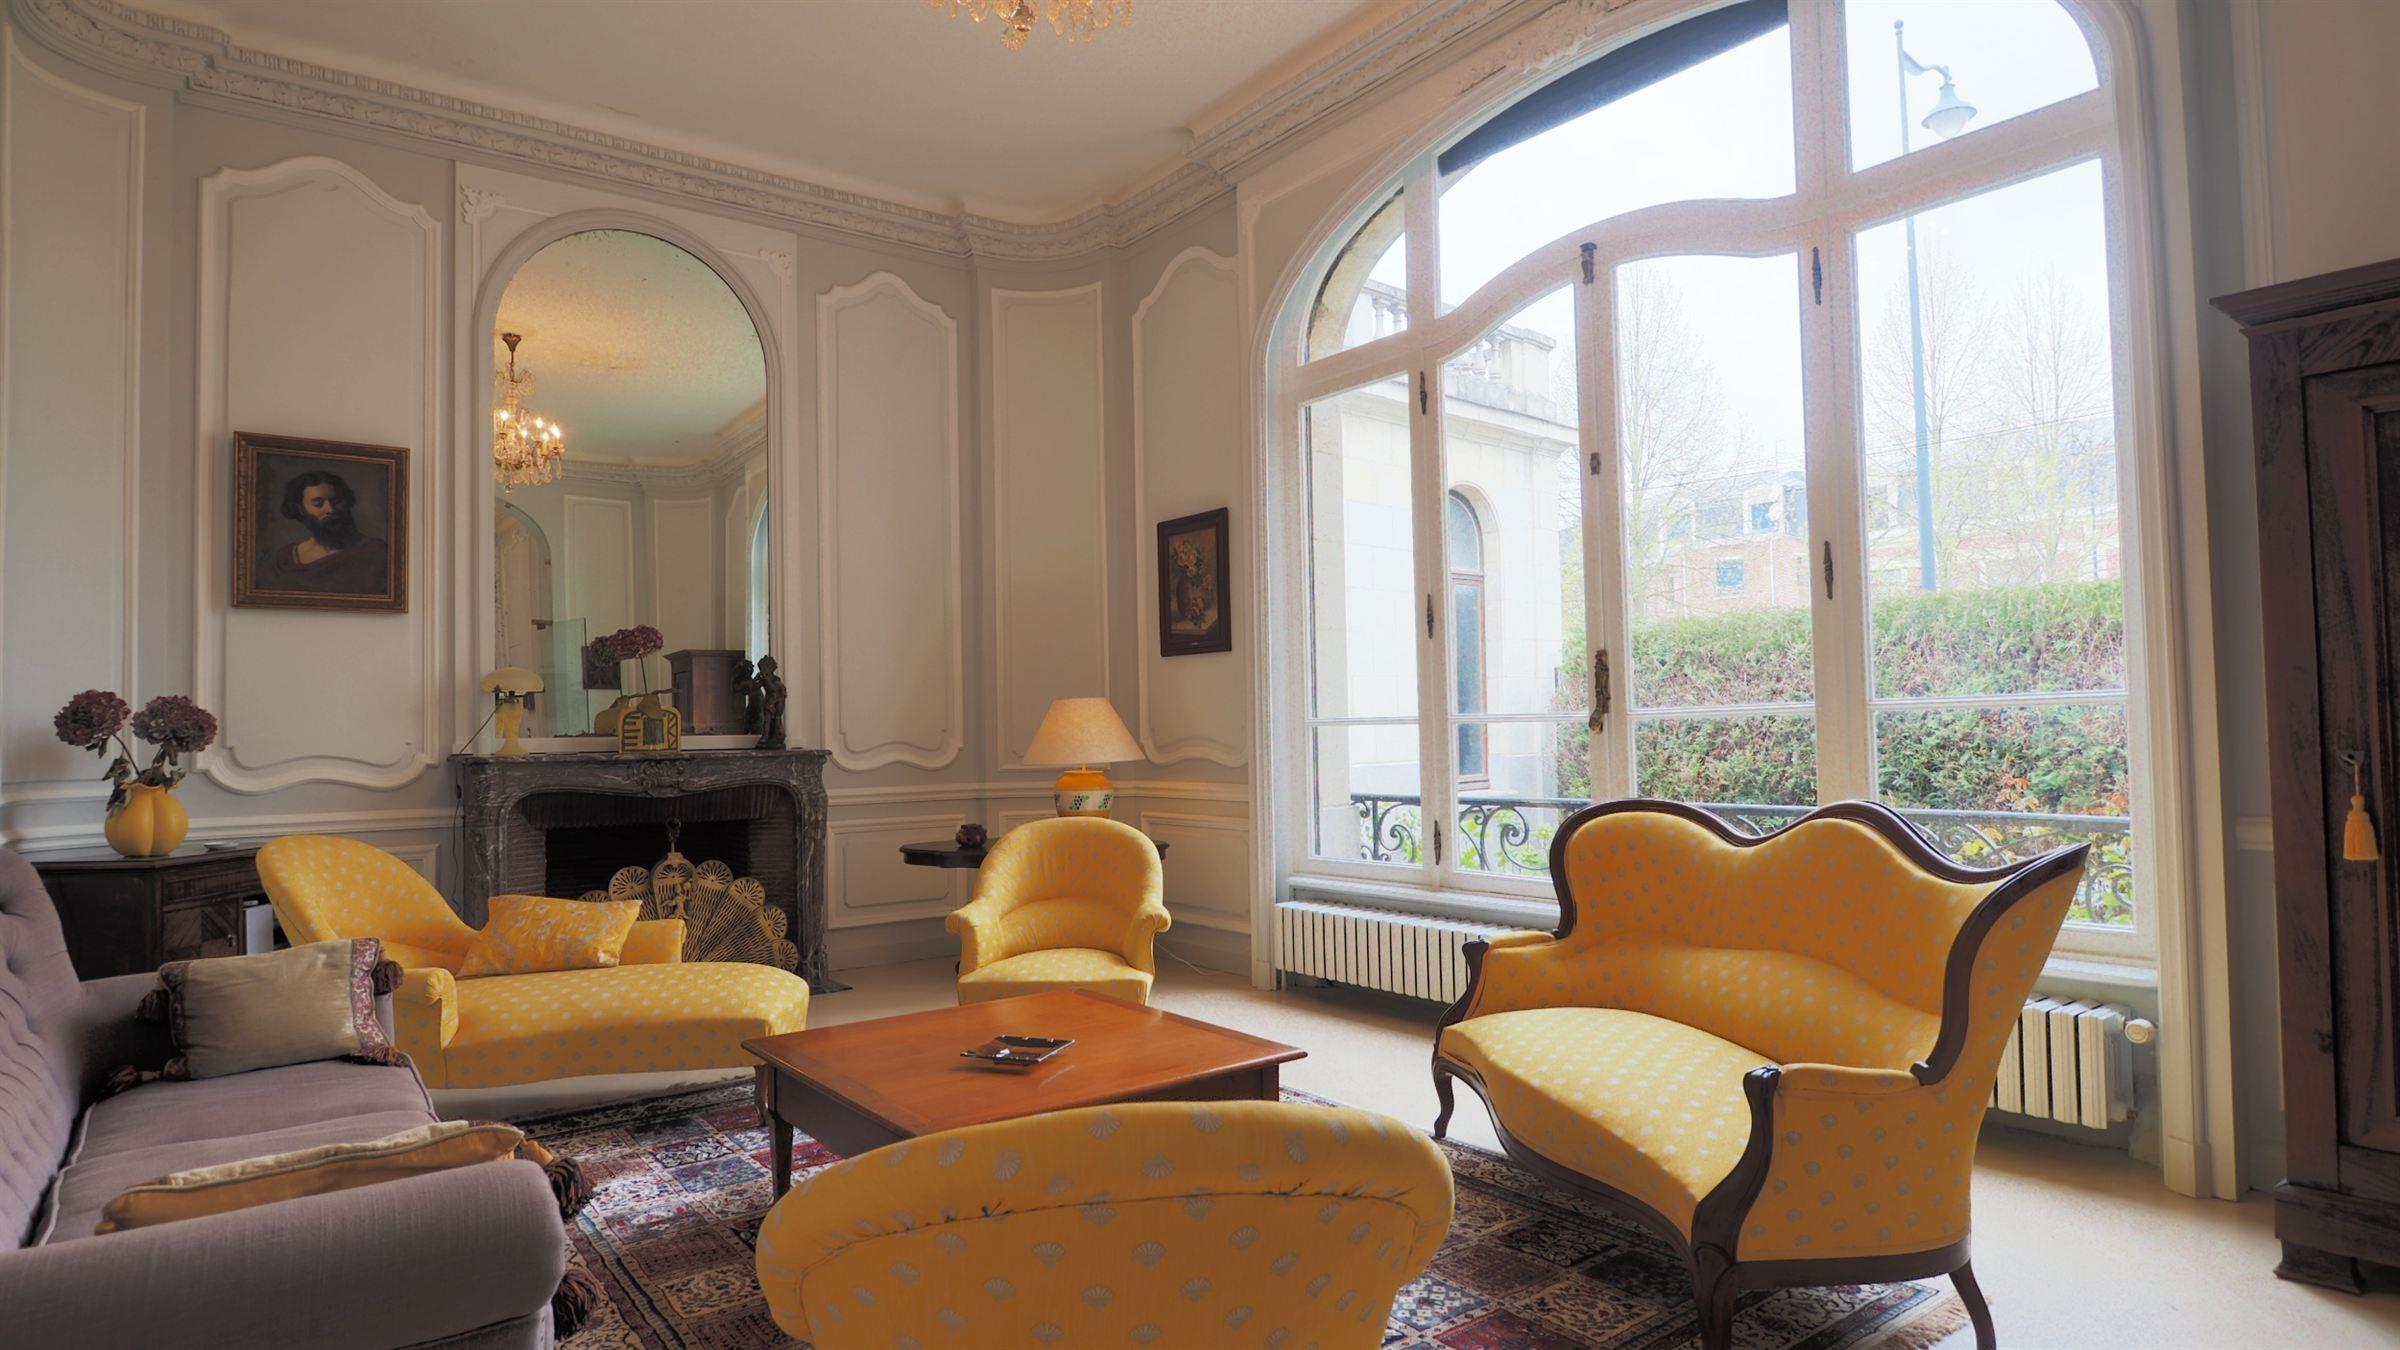 sales property at Arras, 337sqm Master house with 6 bedrooms.